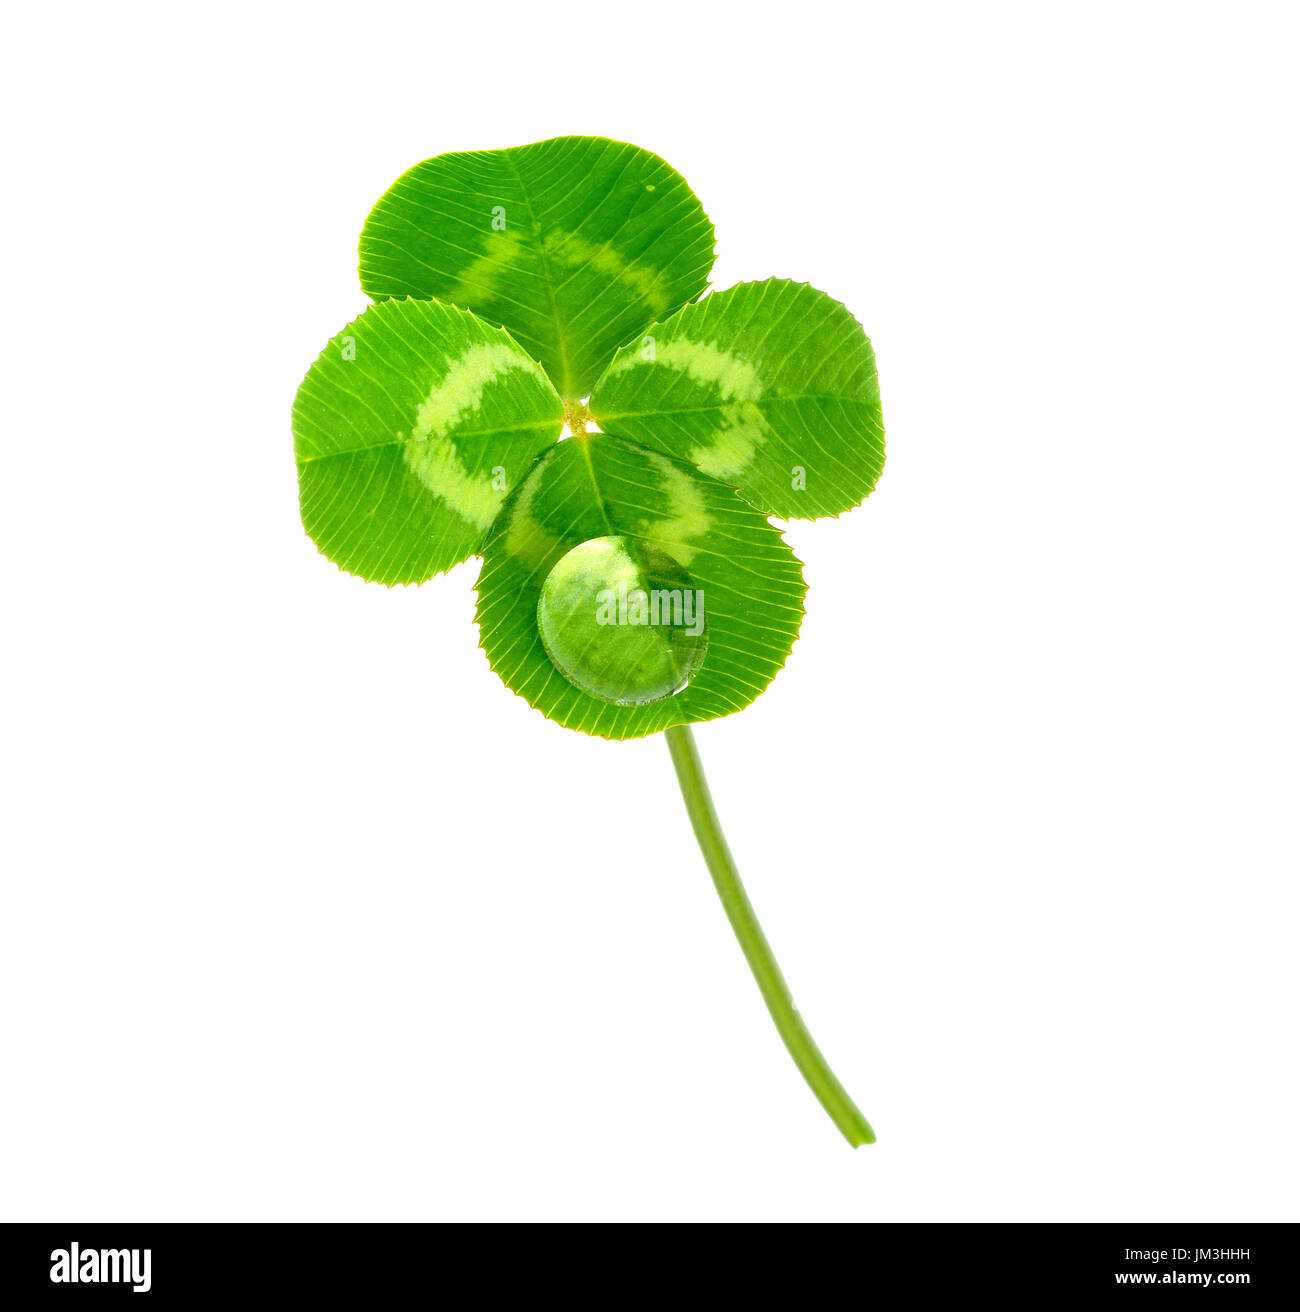 lucky clover isolated on white background Stock Photo